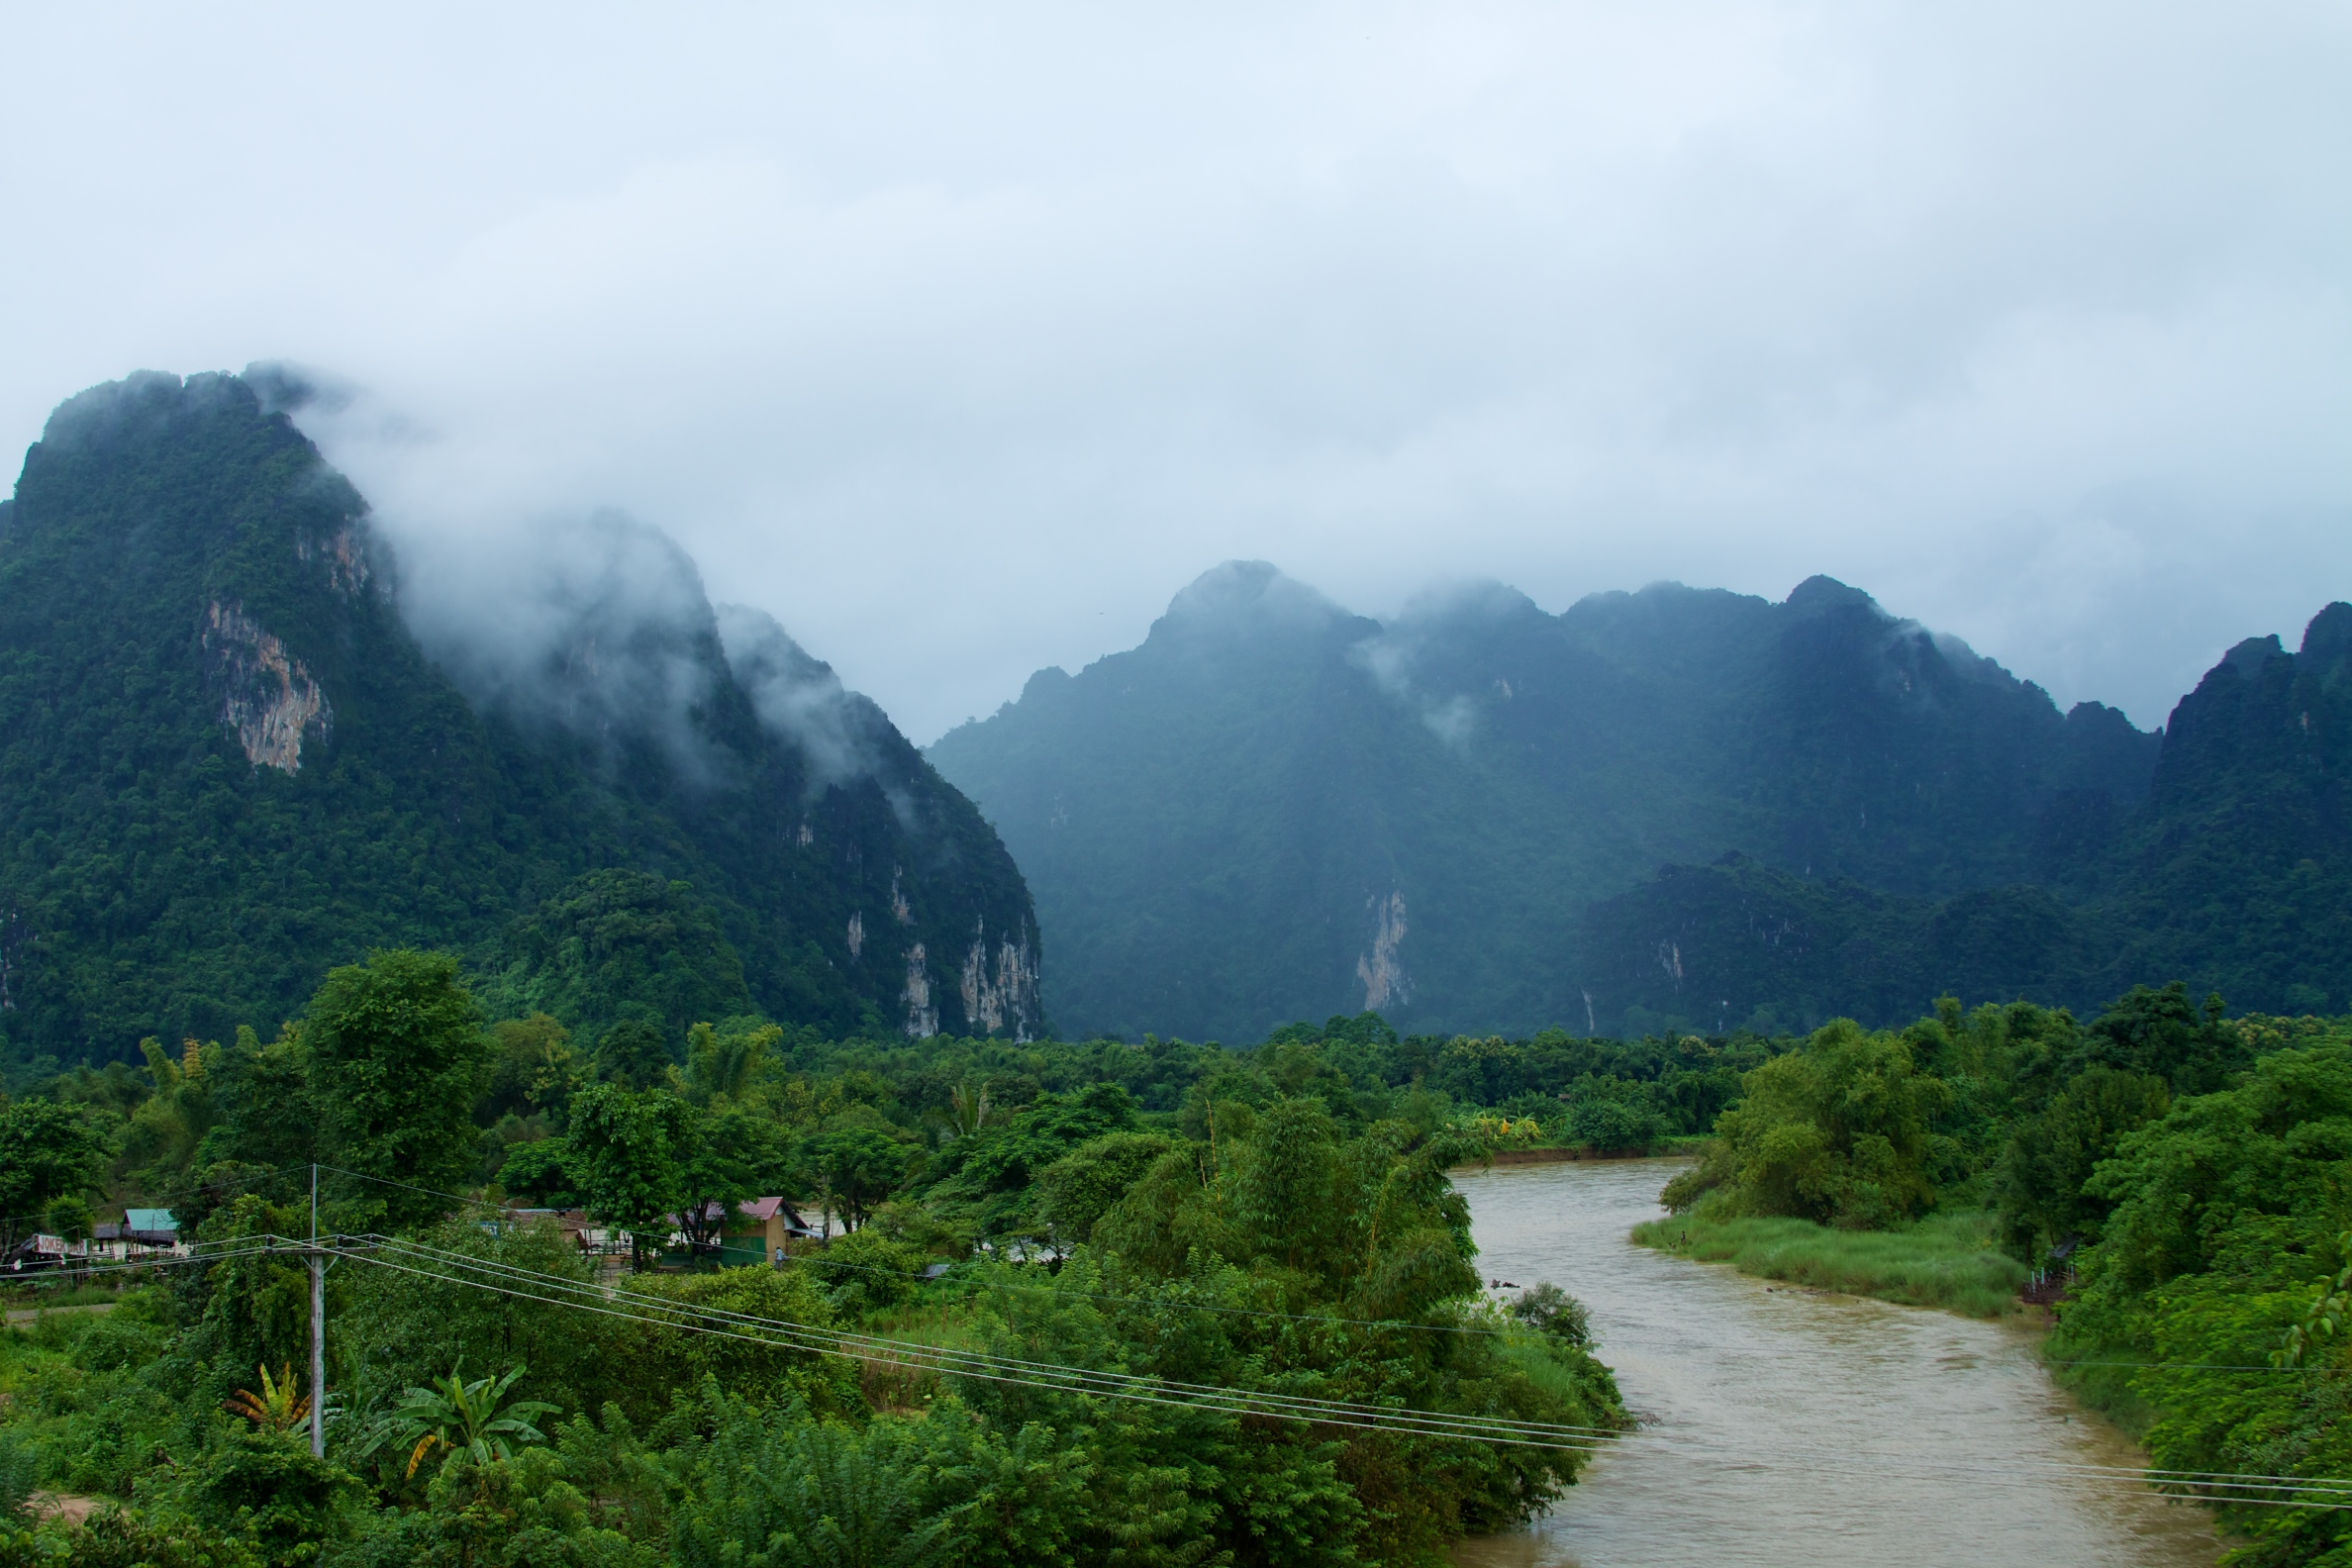 File:Laos - Vang Vieng 08 (6579614835).jpg - Wikimedia Commons